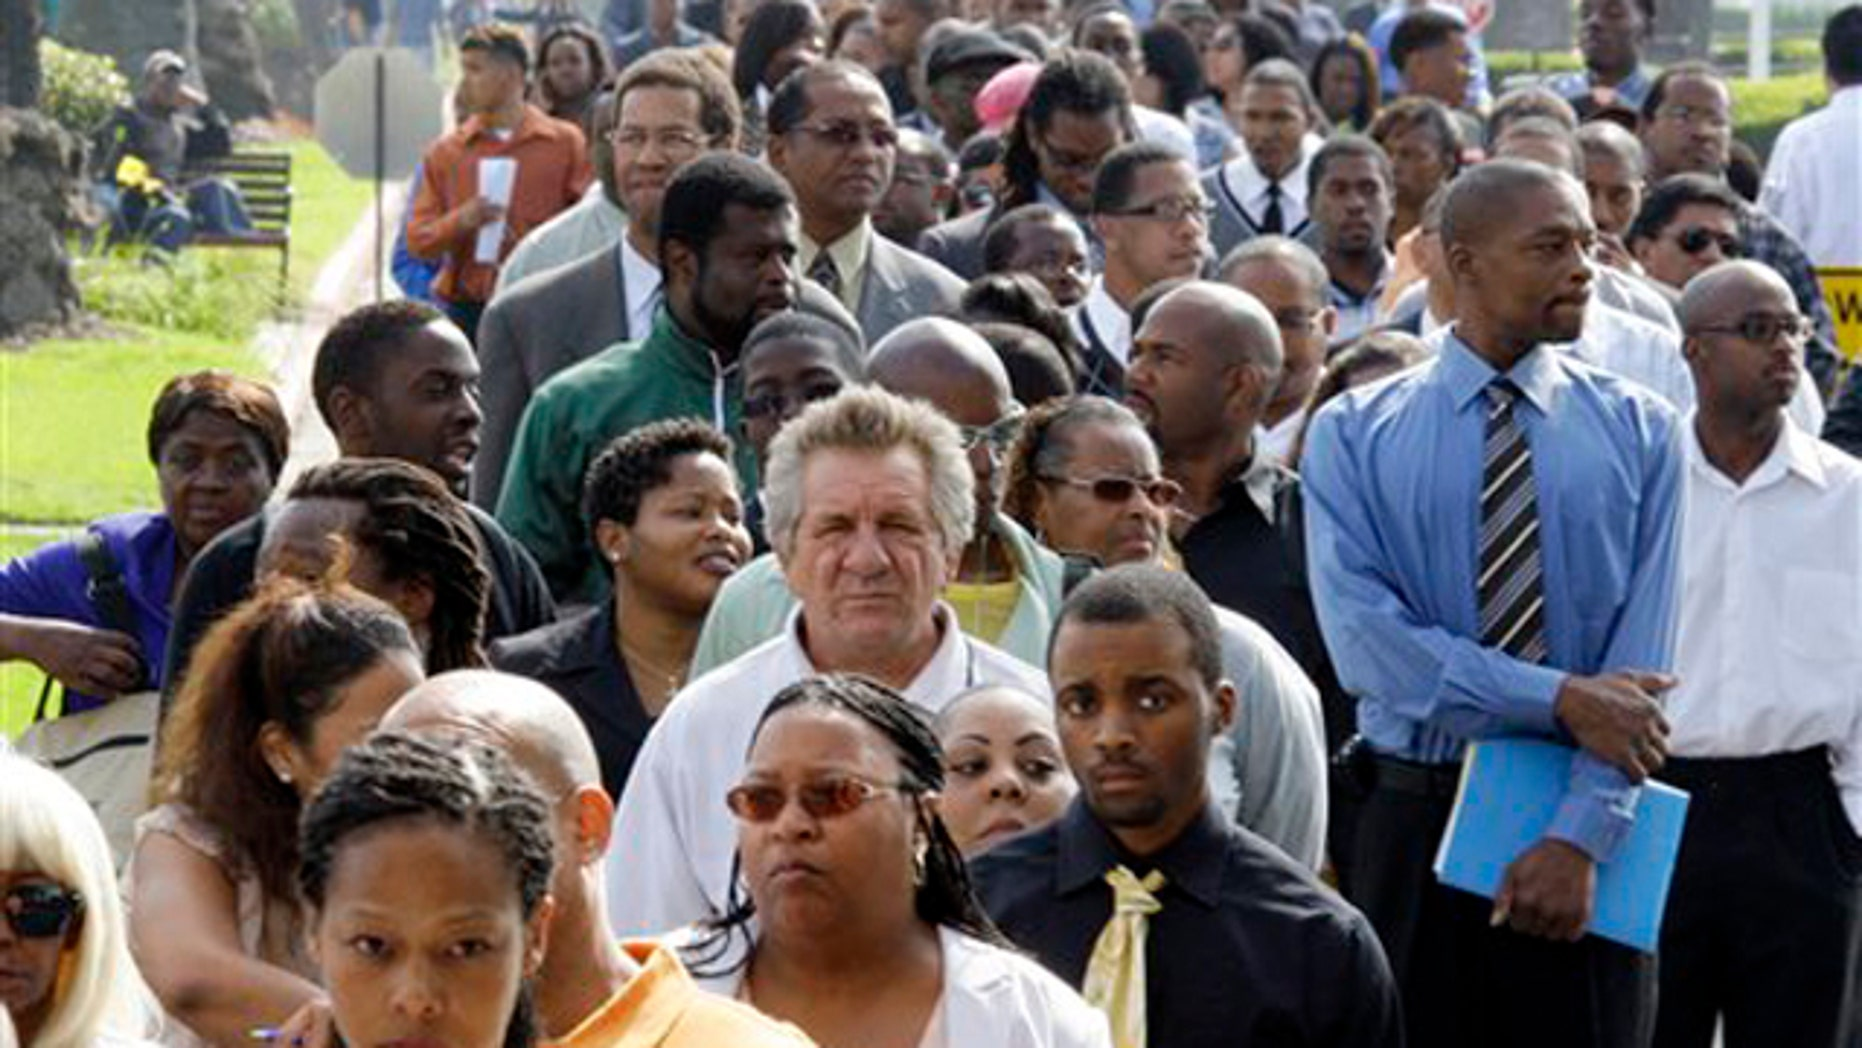 In this Aug. 31 photo, crowds of job-seekers wait to enter a job fair at Crenshaw Christian Center in South Los Angeles.